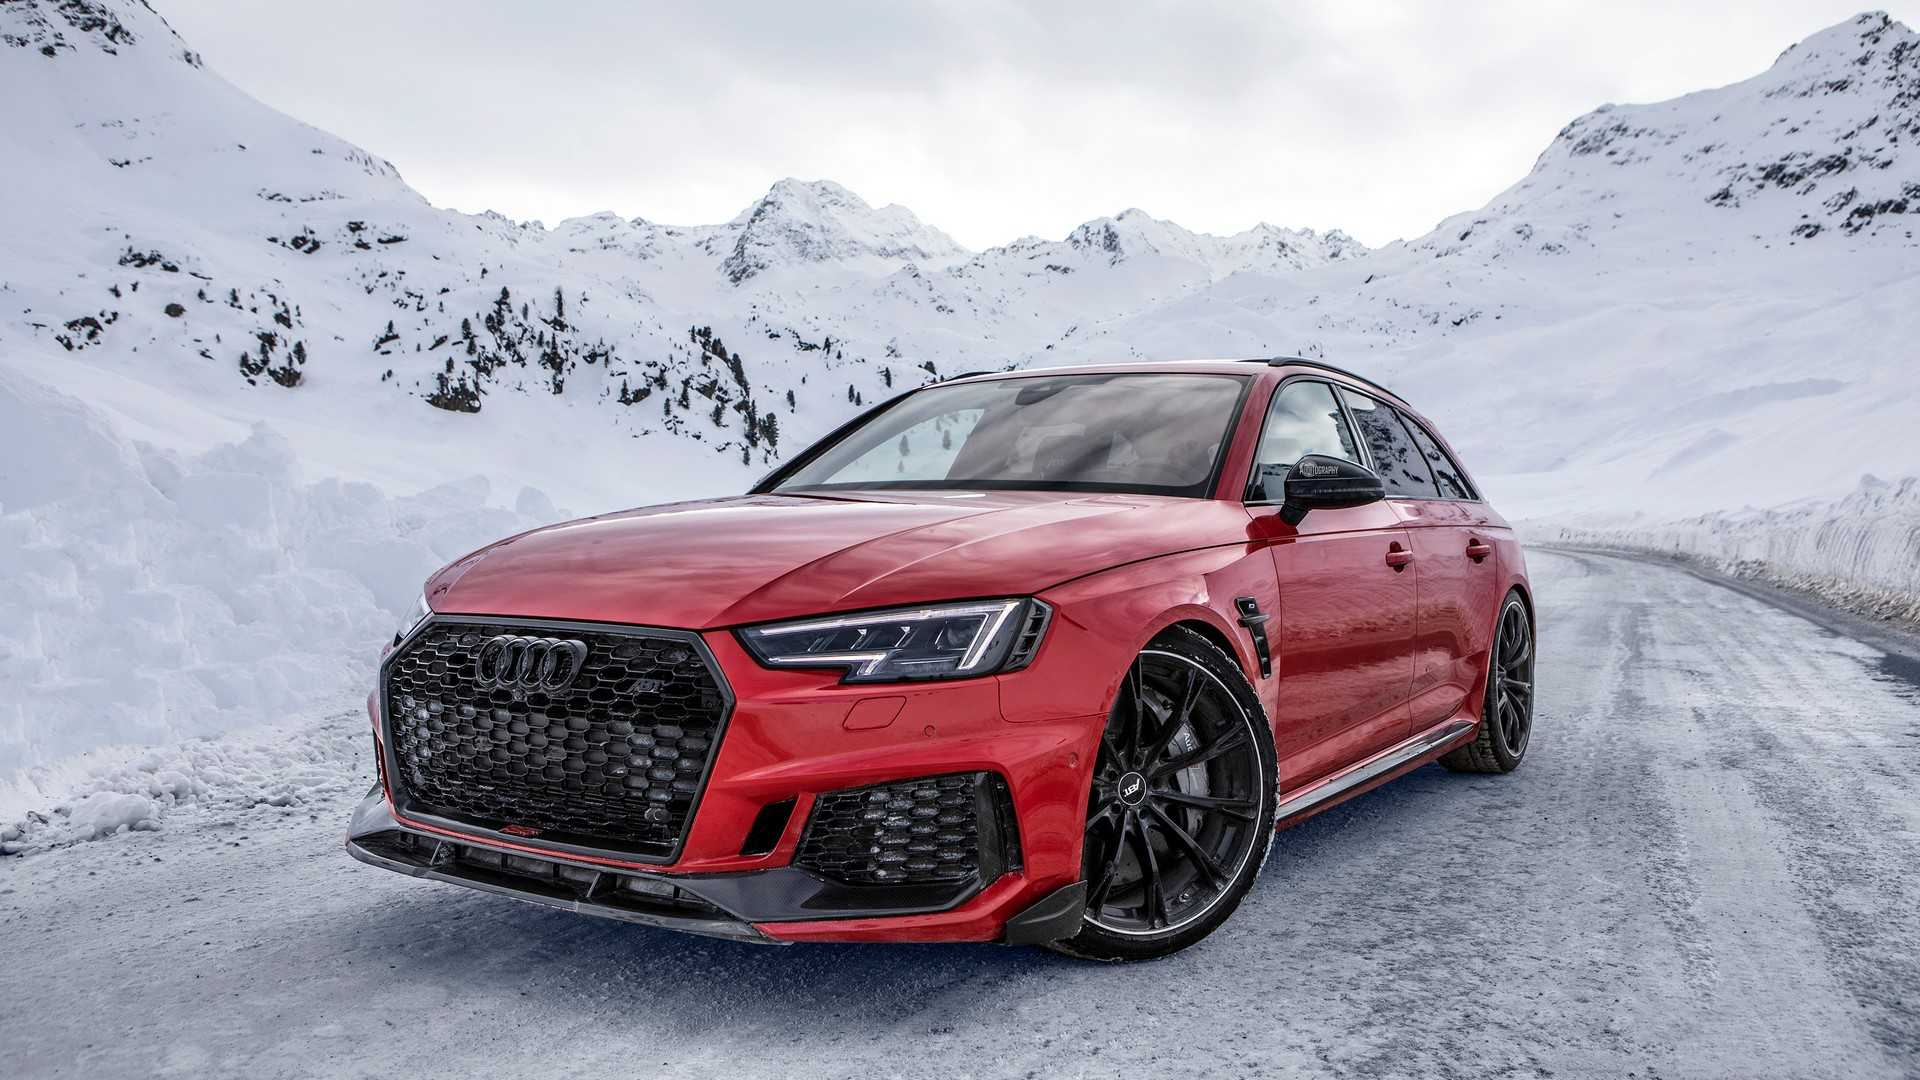 ABT Sportsline has released several photos and a video showcasing its limited-issue Audi RS4+ Avant having a great day off somewhere in the snowy Alps